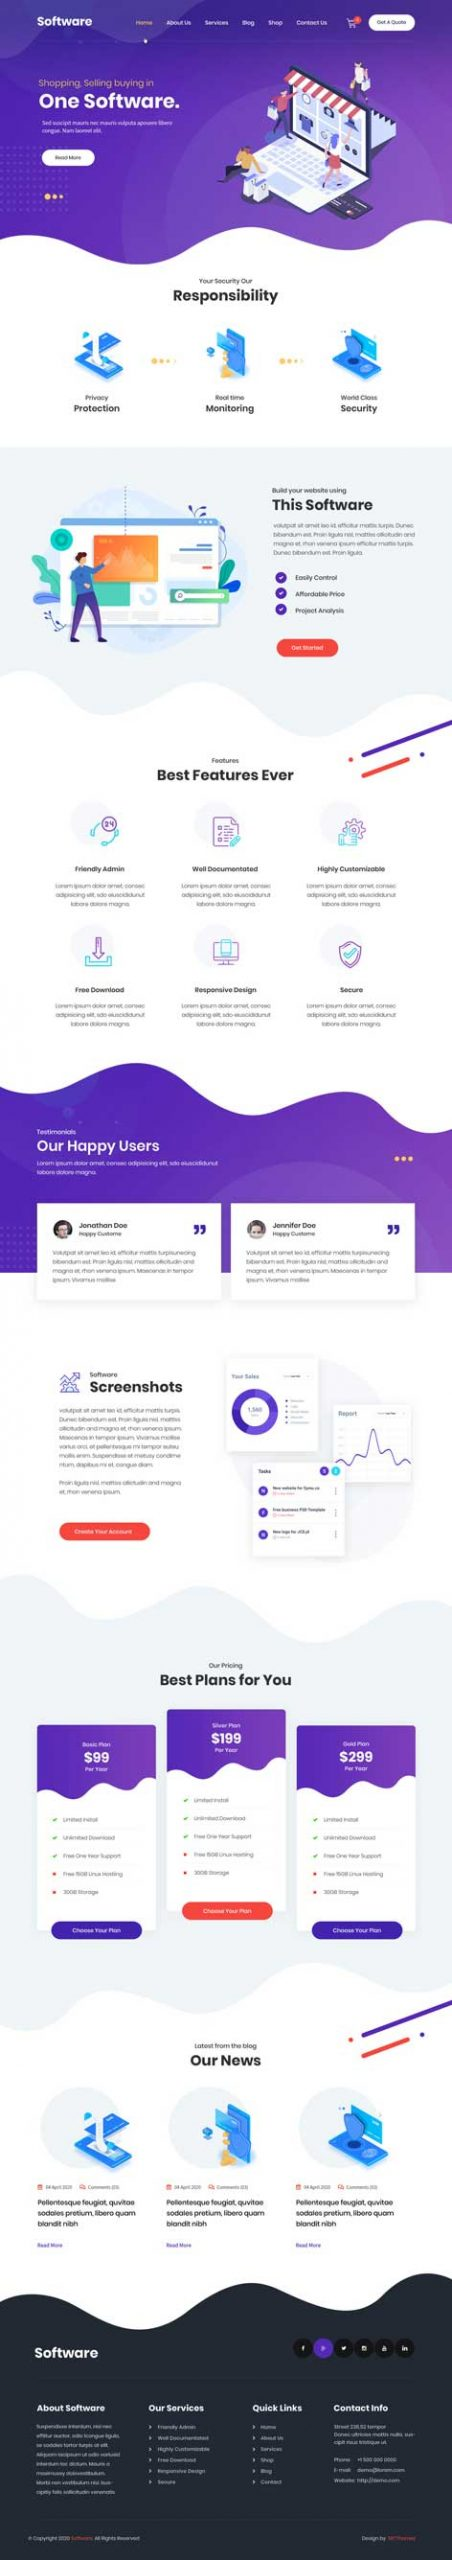 software service WordPress theme